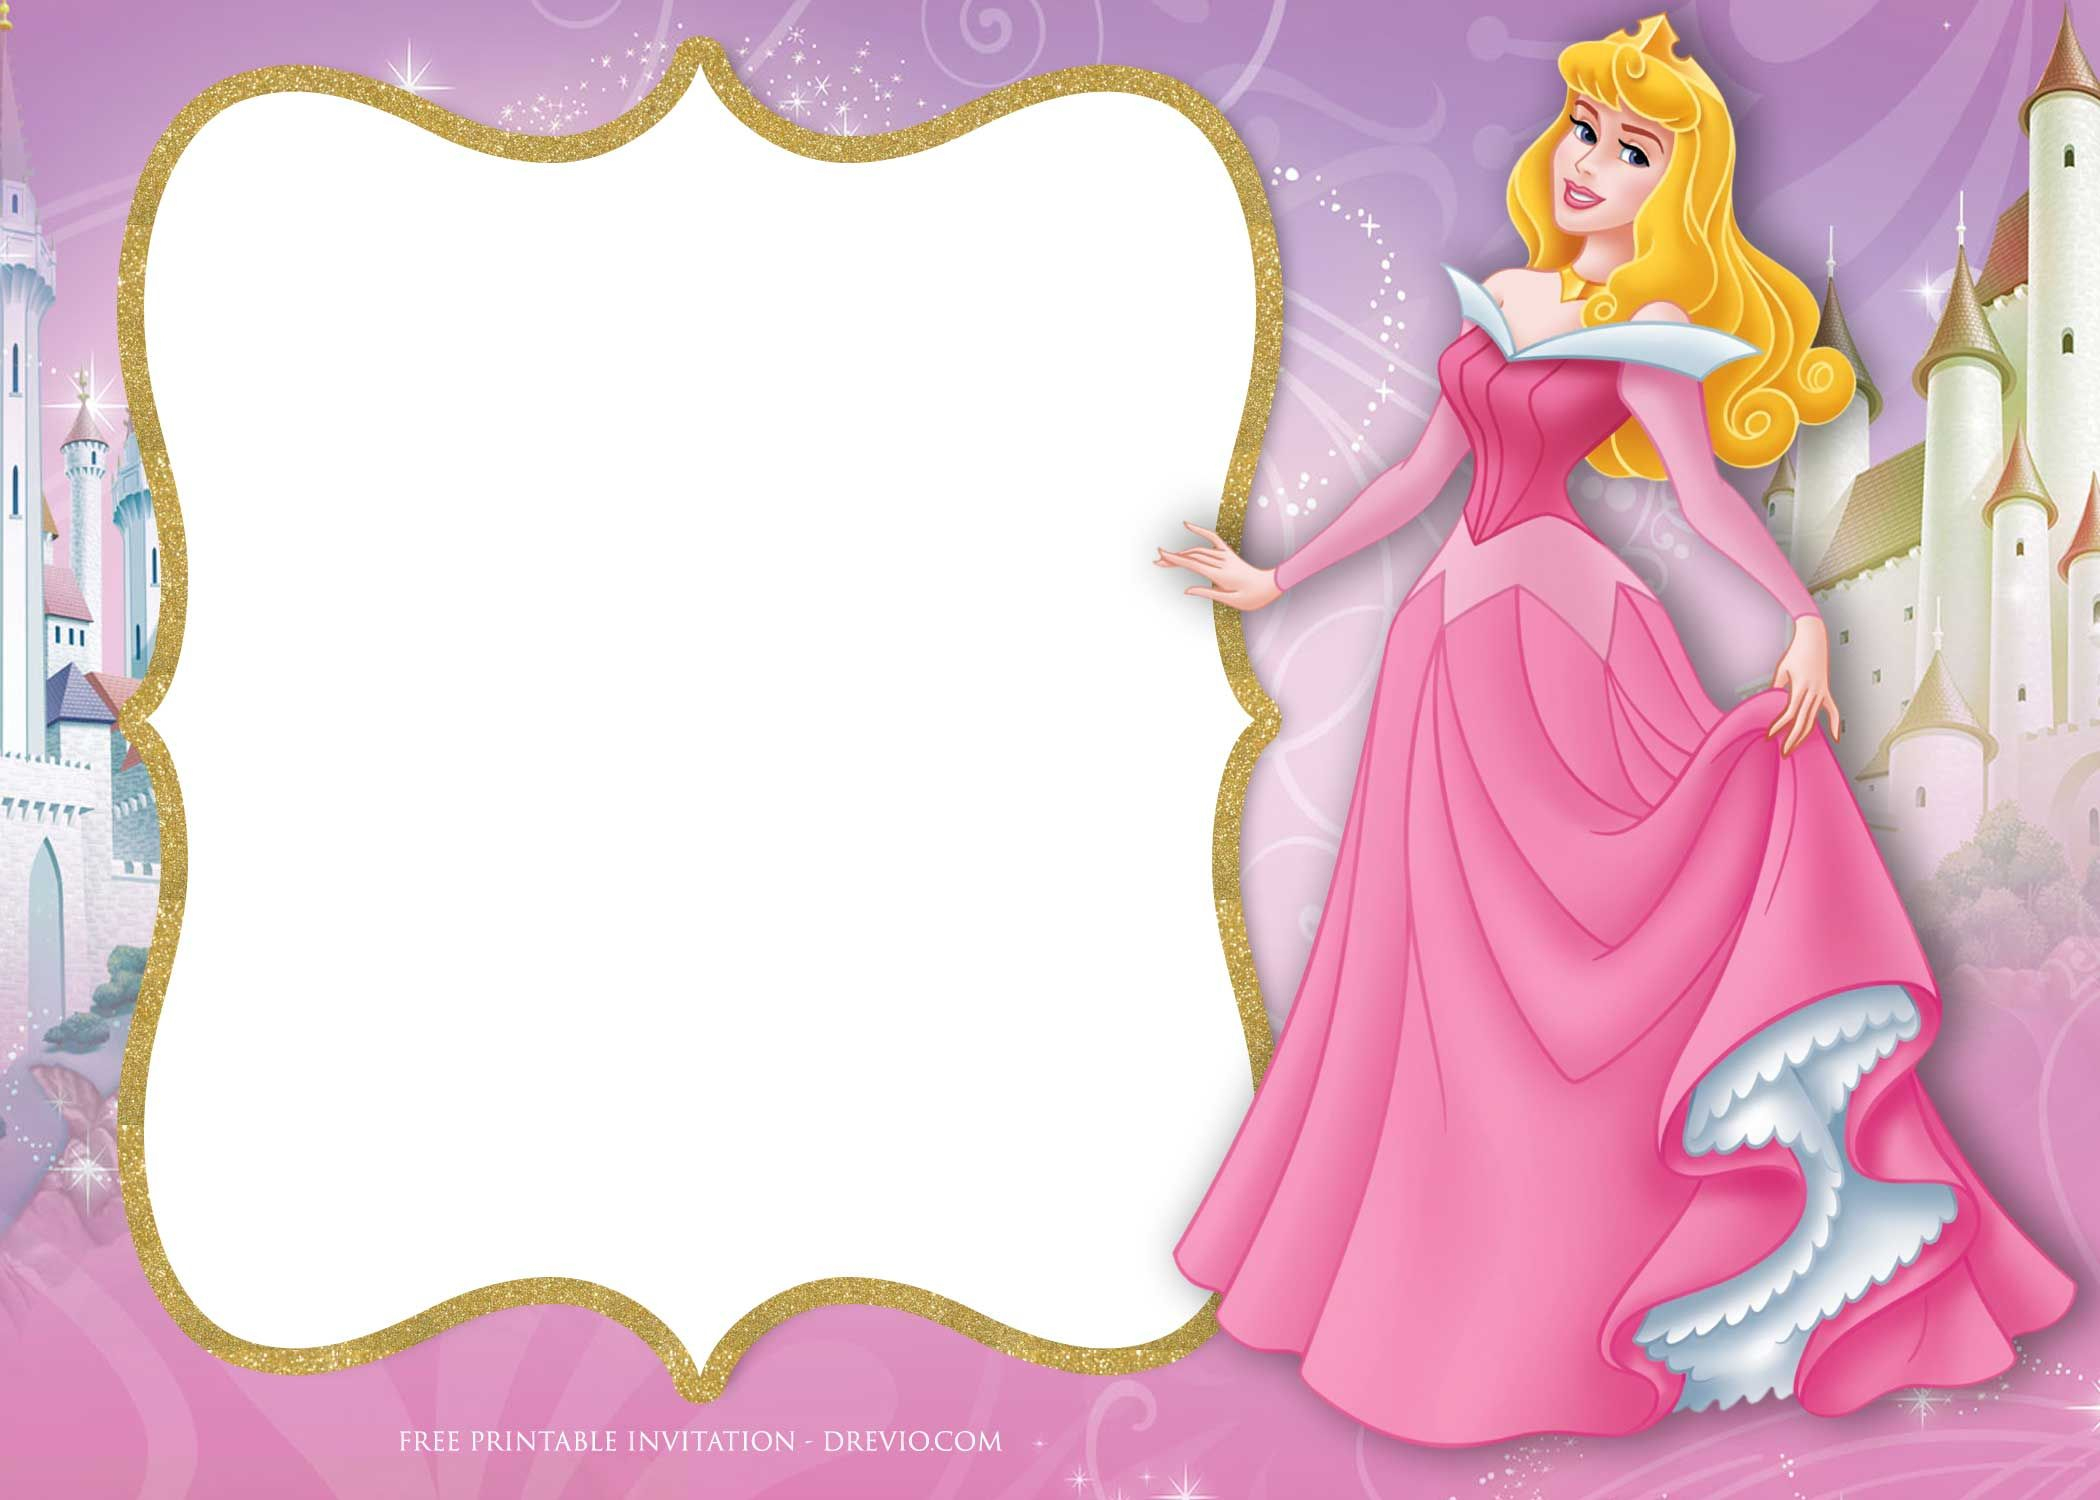 Free Printable Princess Aurora Sleeping Beauty Invitation - Free Princess Printable Invitations